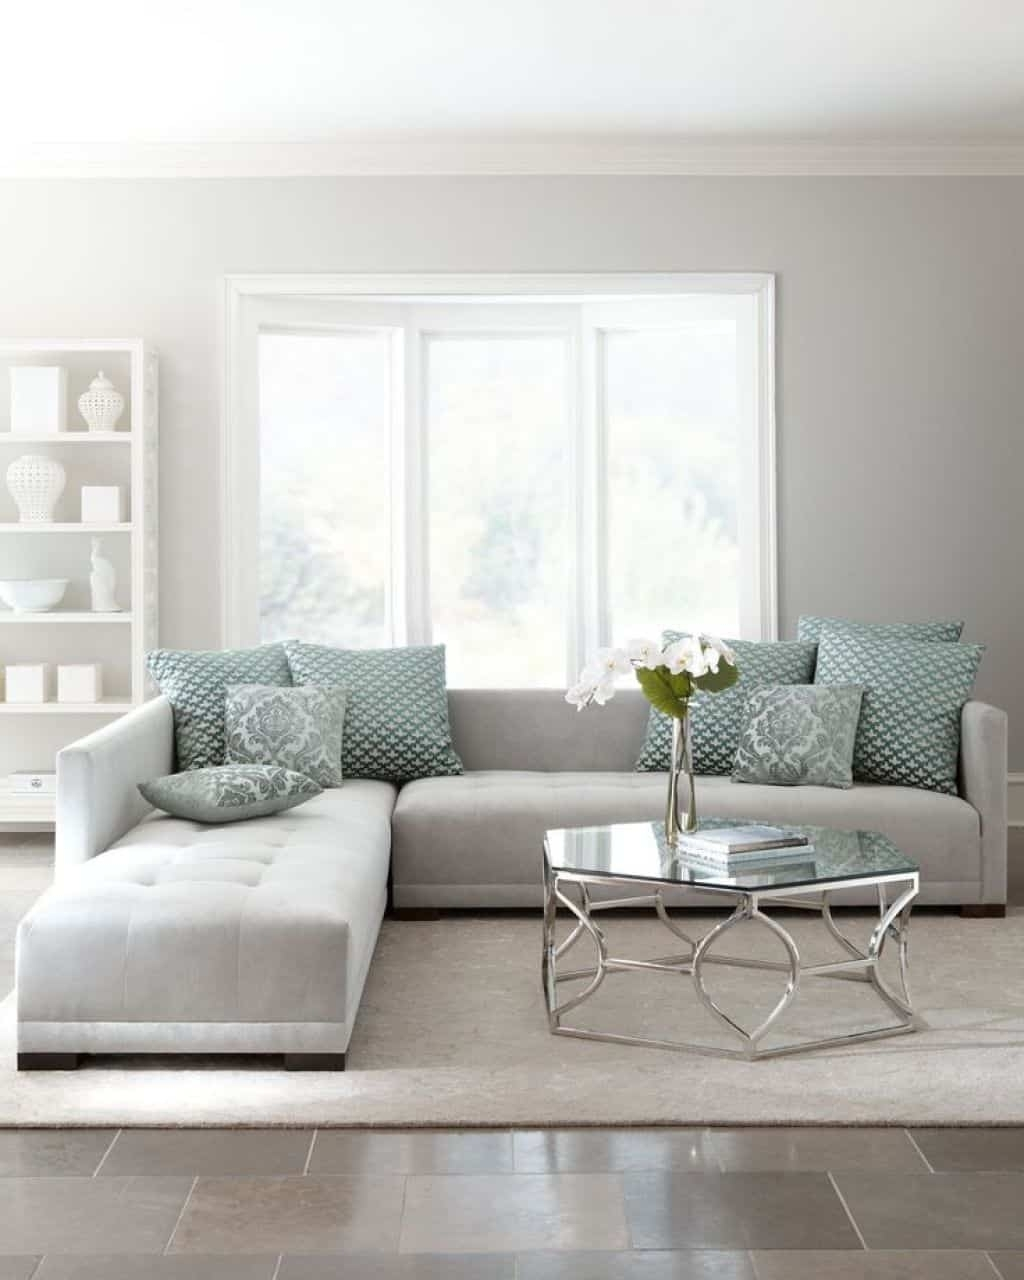 Living Room With Light Grey Sectional Sofa – Ways To Move A With Regard To Light Grey Sectional Sofas (Image 8 of 10)